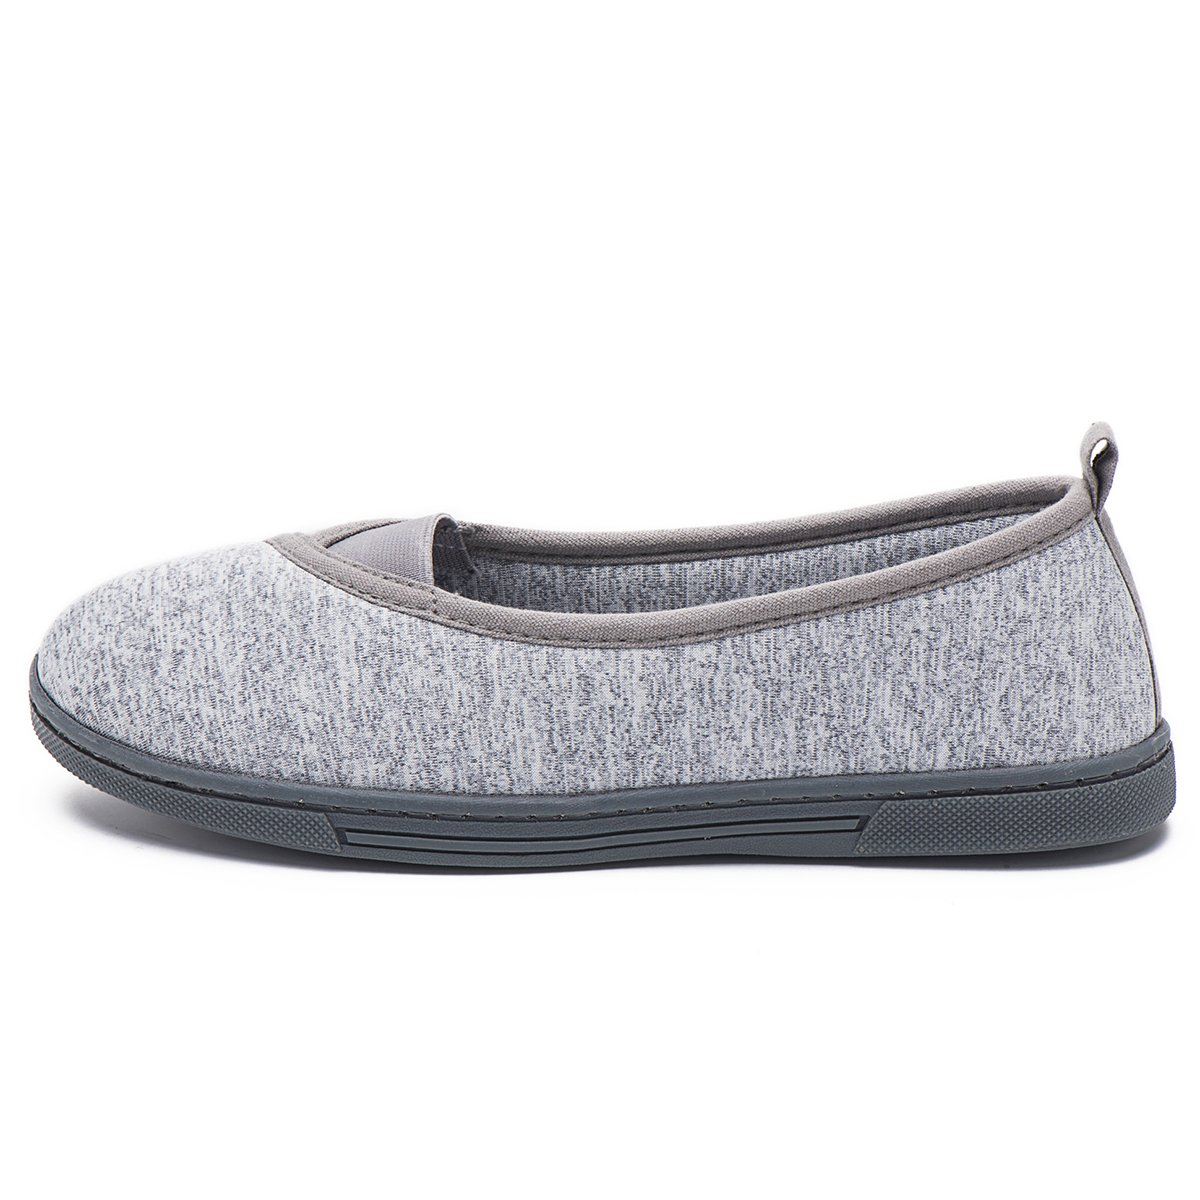 FootTech Women House Slippers Memory Foam Lightweight Anti-Skid Comfort Cotton Home Shoes Designed by (US7-8, Grey)